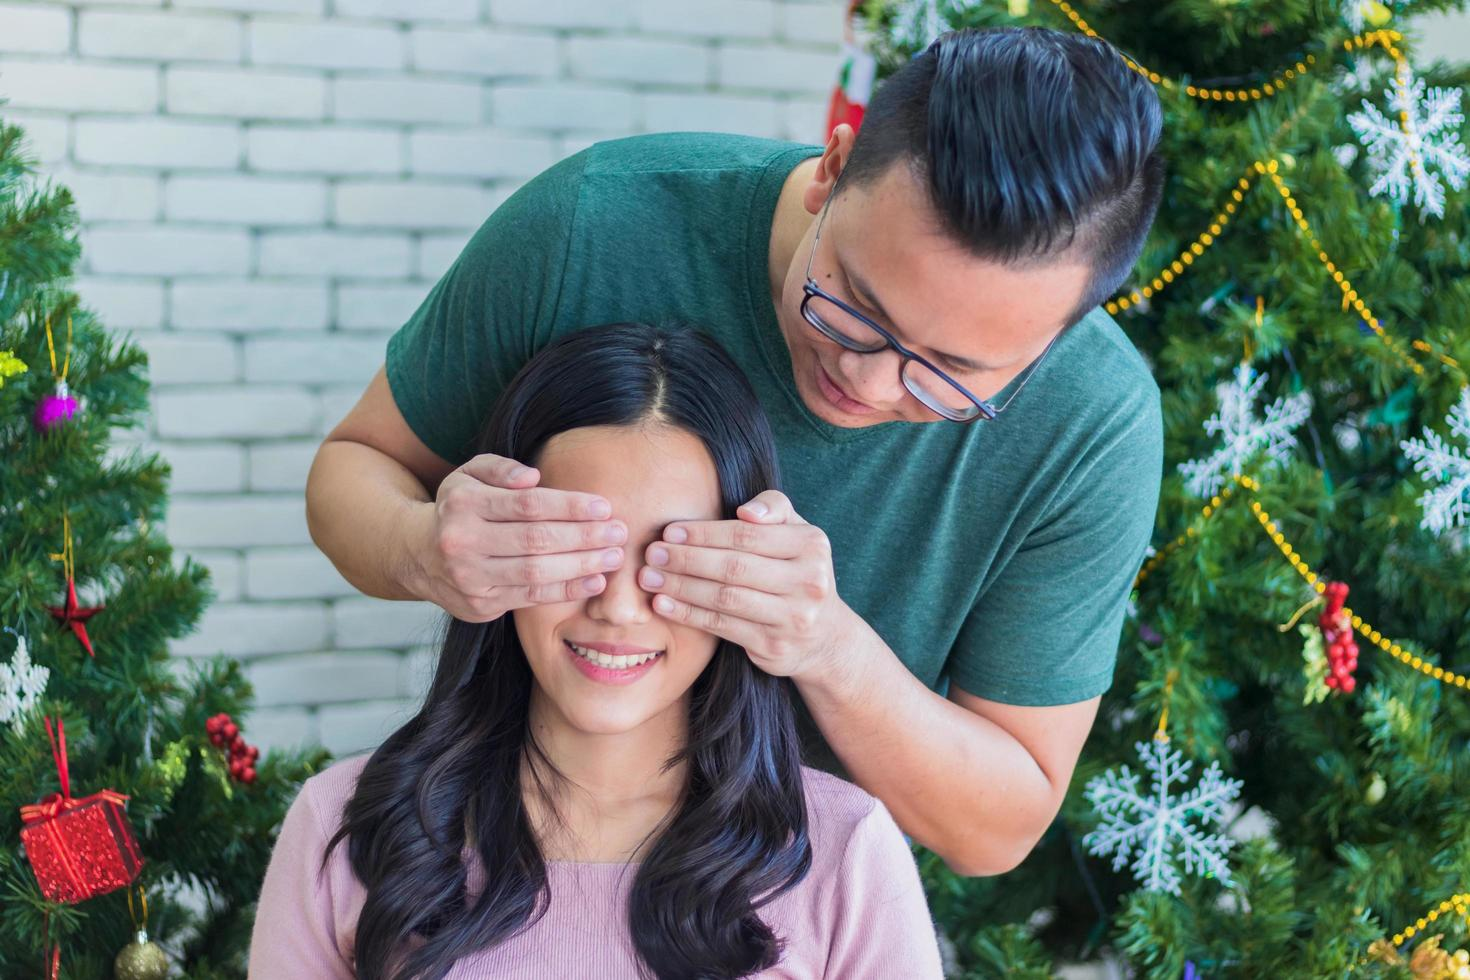 Man surprising woman with Christmas trees in background photo